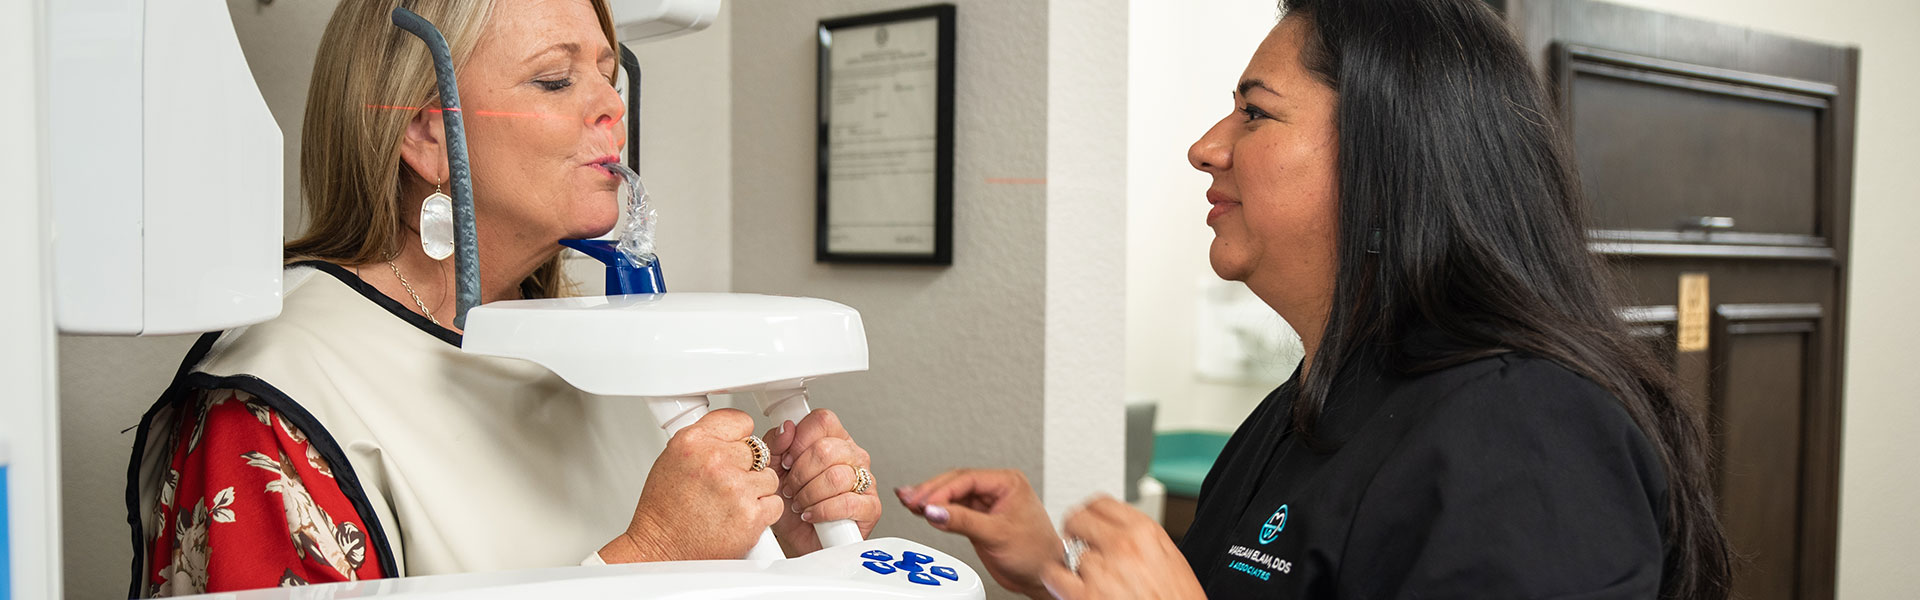 A patient trying out new dental equipments at Maegan Elam, DDS & Associates